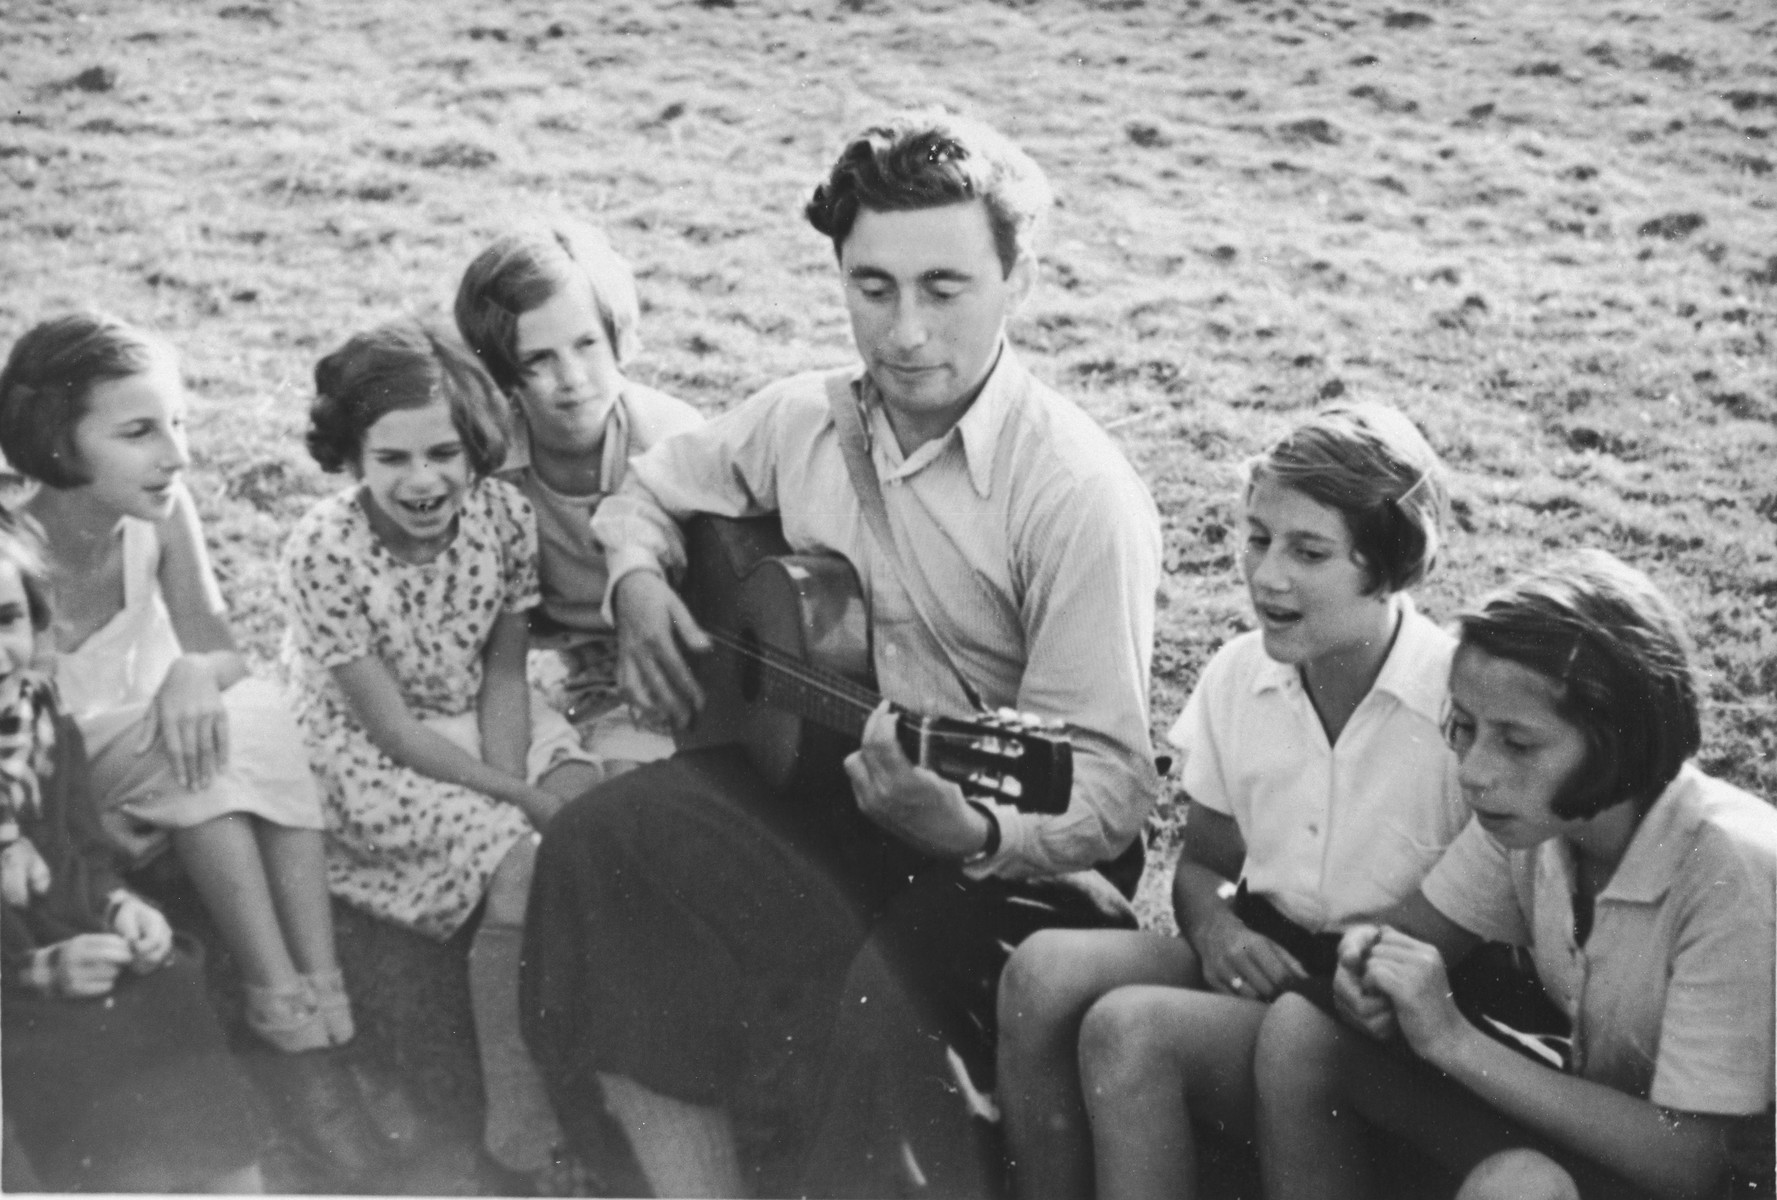 A group of Jewish girls from Germany sings along as one of their counselors play the guitar at a Kinderlager [children's recreational summer camp] in Horserod, Denmark.    In 1935-36 Norbert Wollheim was involved in organizing groups of German Jewish youth to attend a summer camp in Denmark.